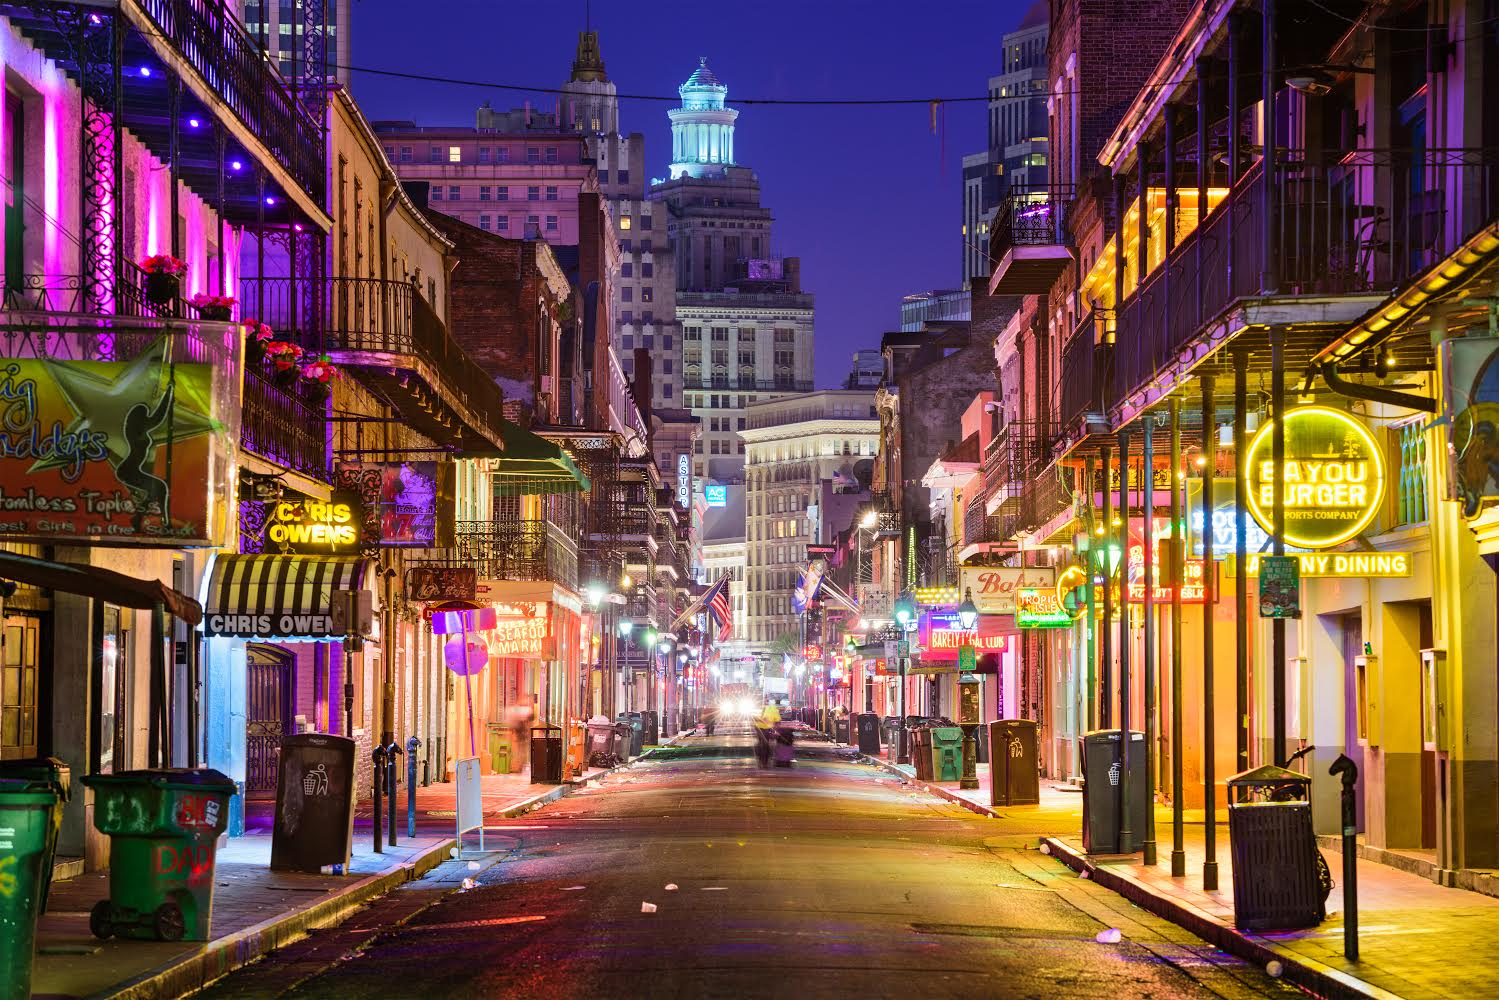 New Orleans, LA, USA - May 10, 2016: Neon bar signs line Bourbon Street in the early morning. The renown nightlife destination is in the heart of the French Quarter.